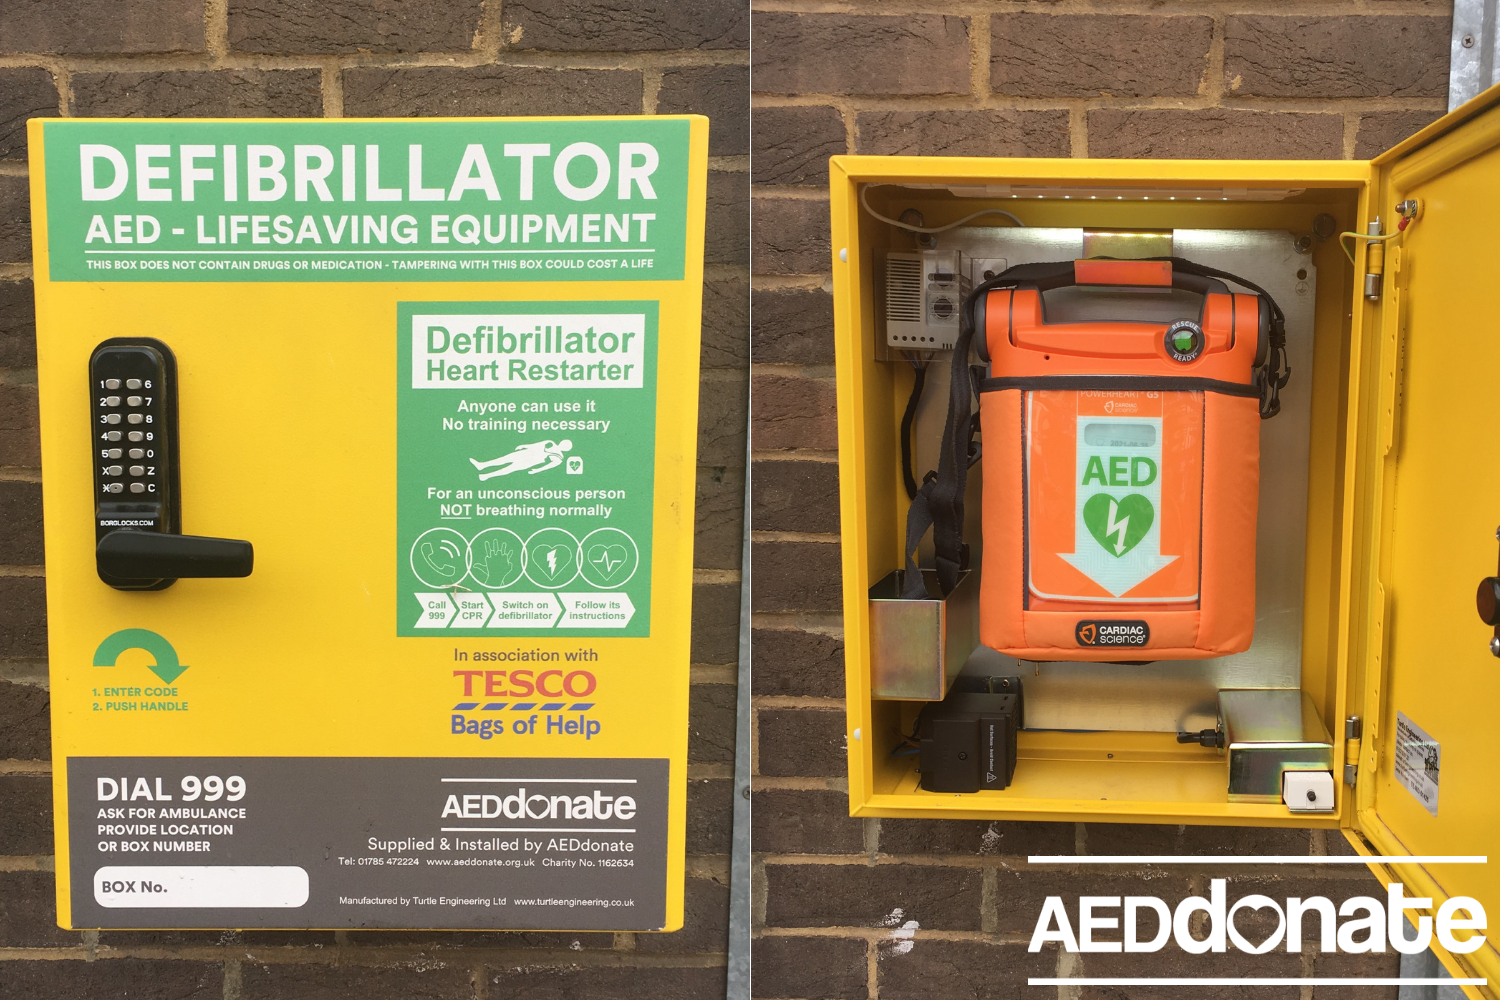 Defibrillator available 24/7 for Borehamwood